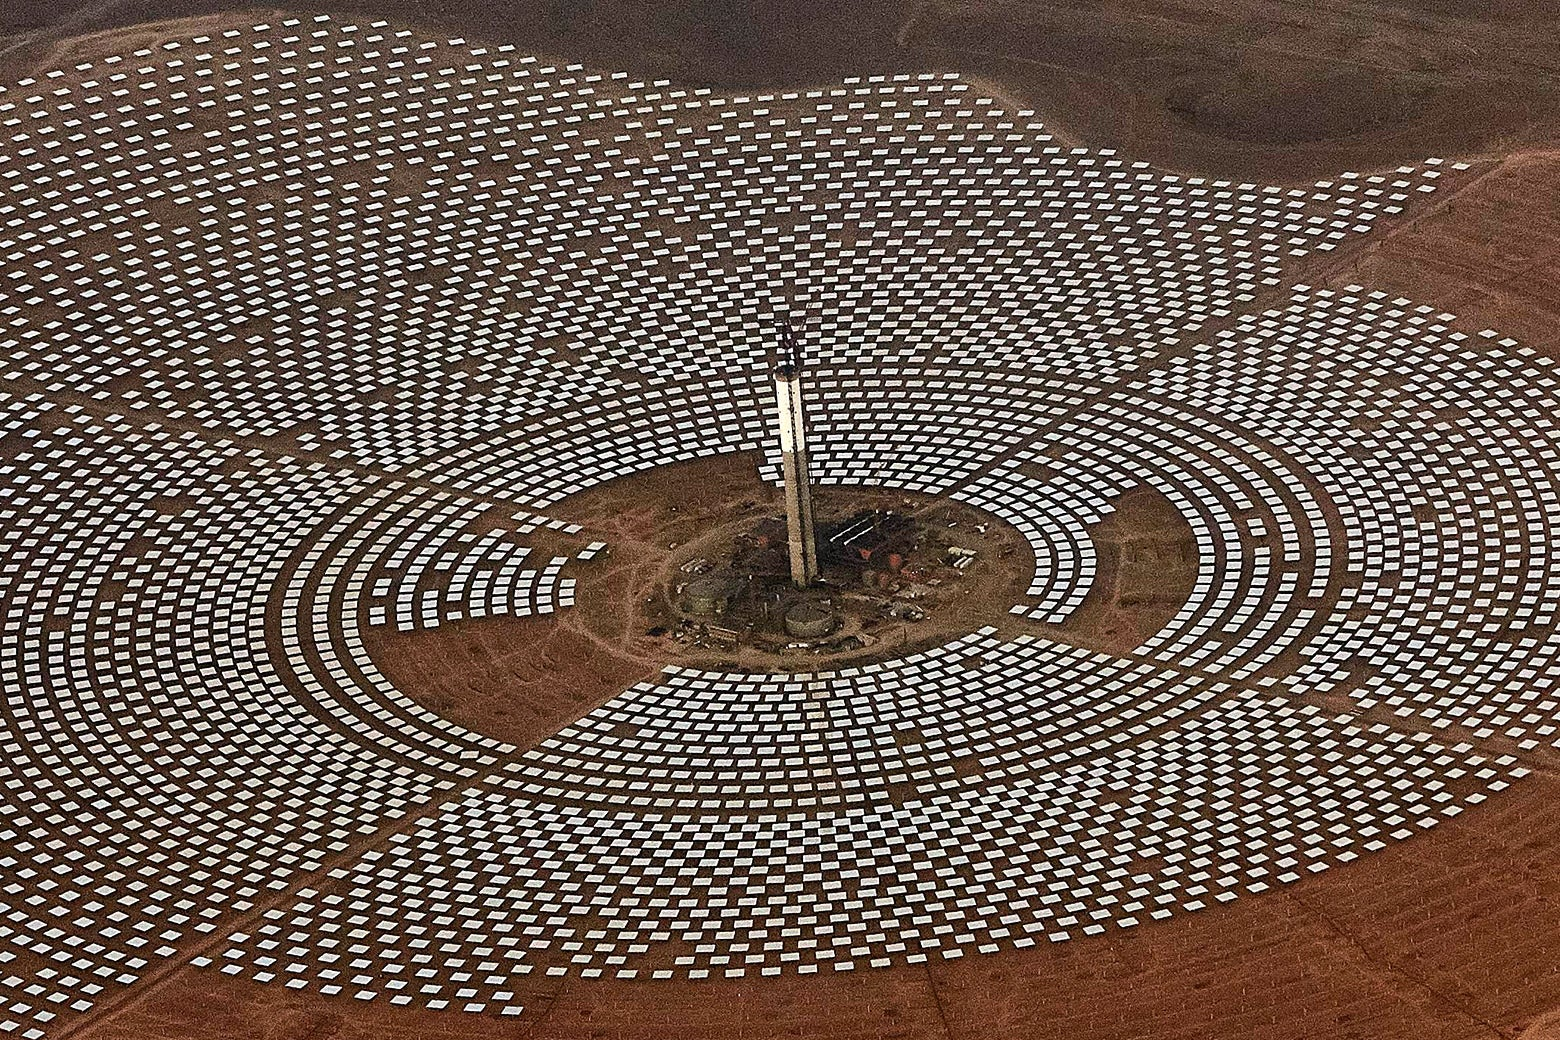 Aerial view of the Noor 3 solar power station near Ouarzazate, Morocco.